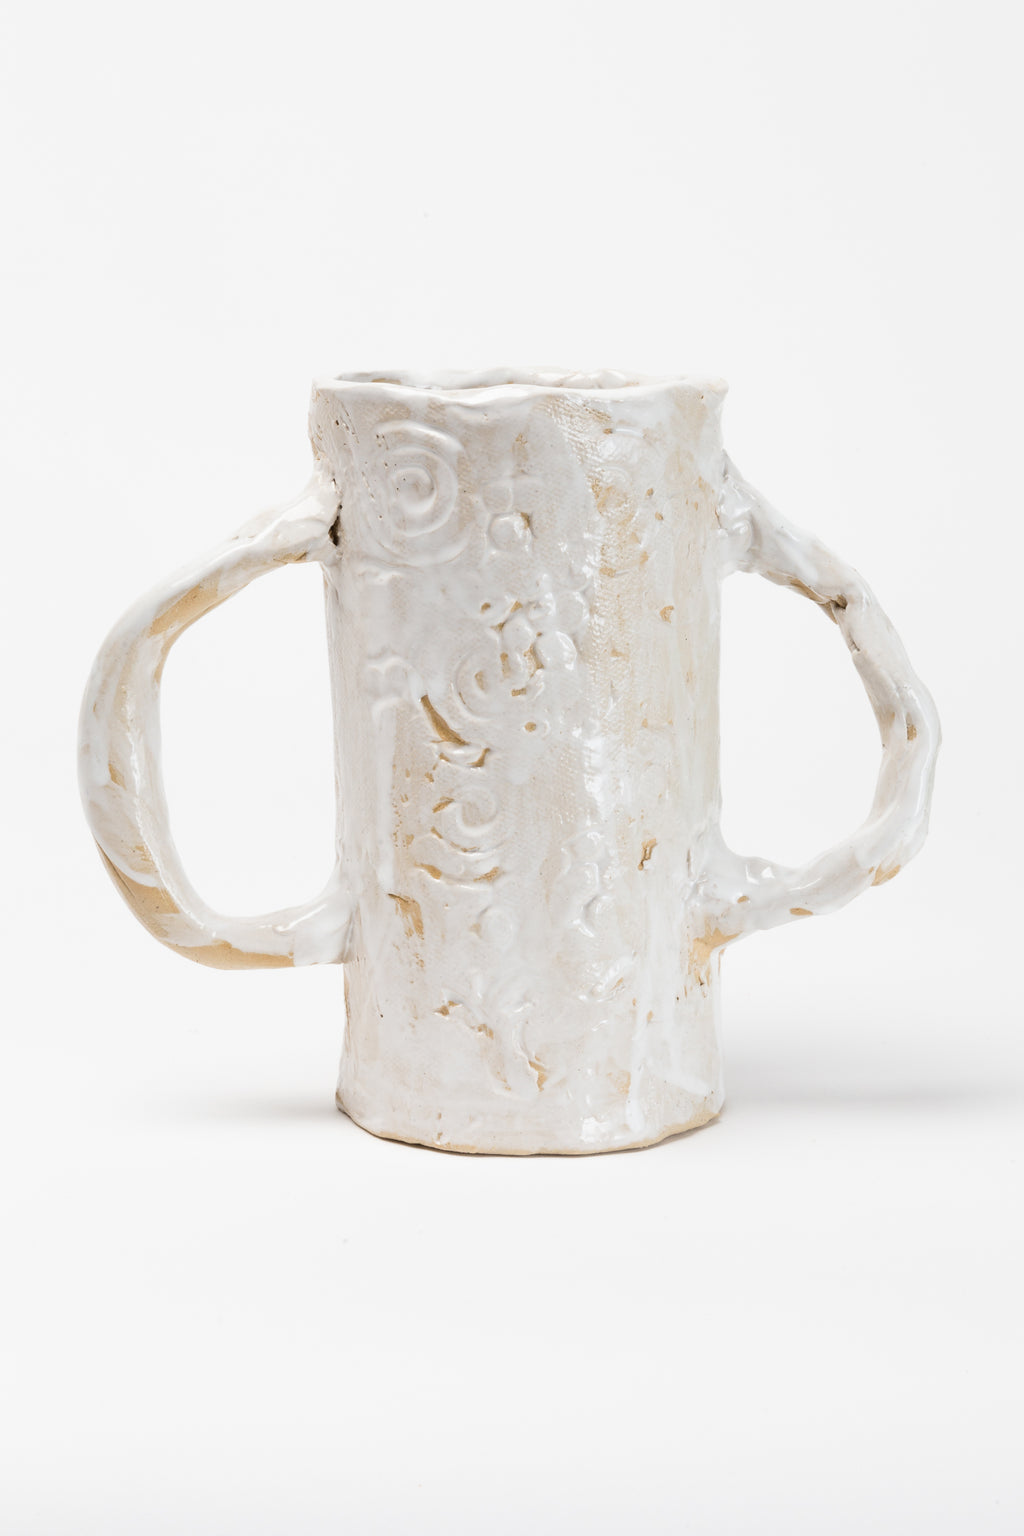 Soul Studio Artist- White Mug with Two Handles